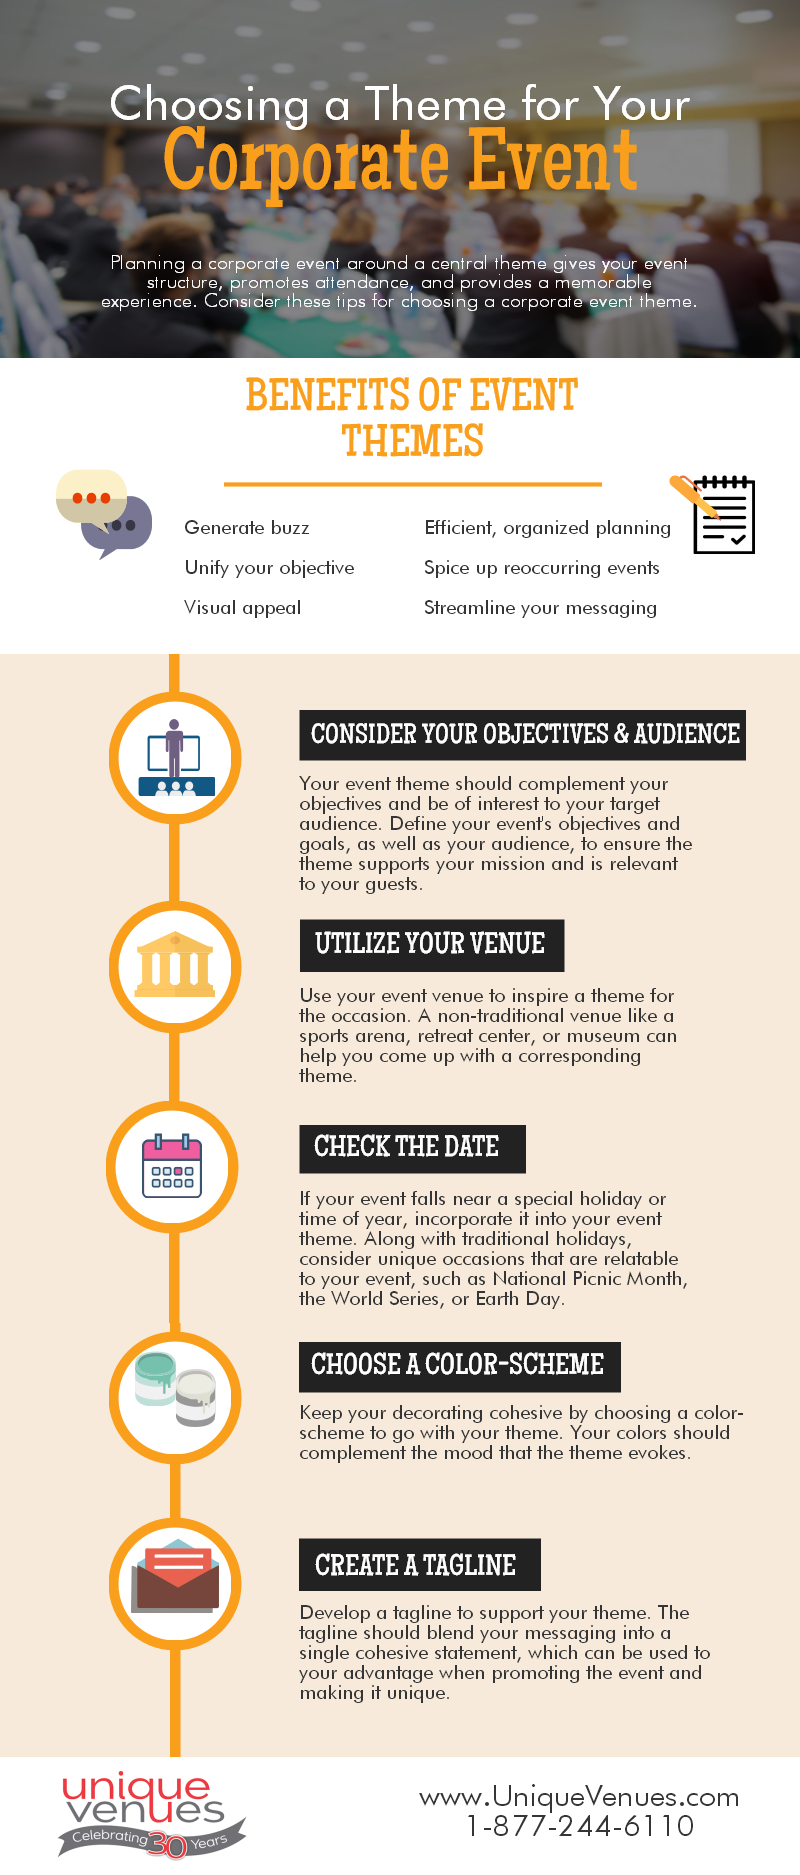 Universities In Oklahoma >> Choosing a Theme for Your Corporate Event - Infographic